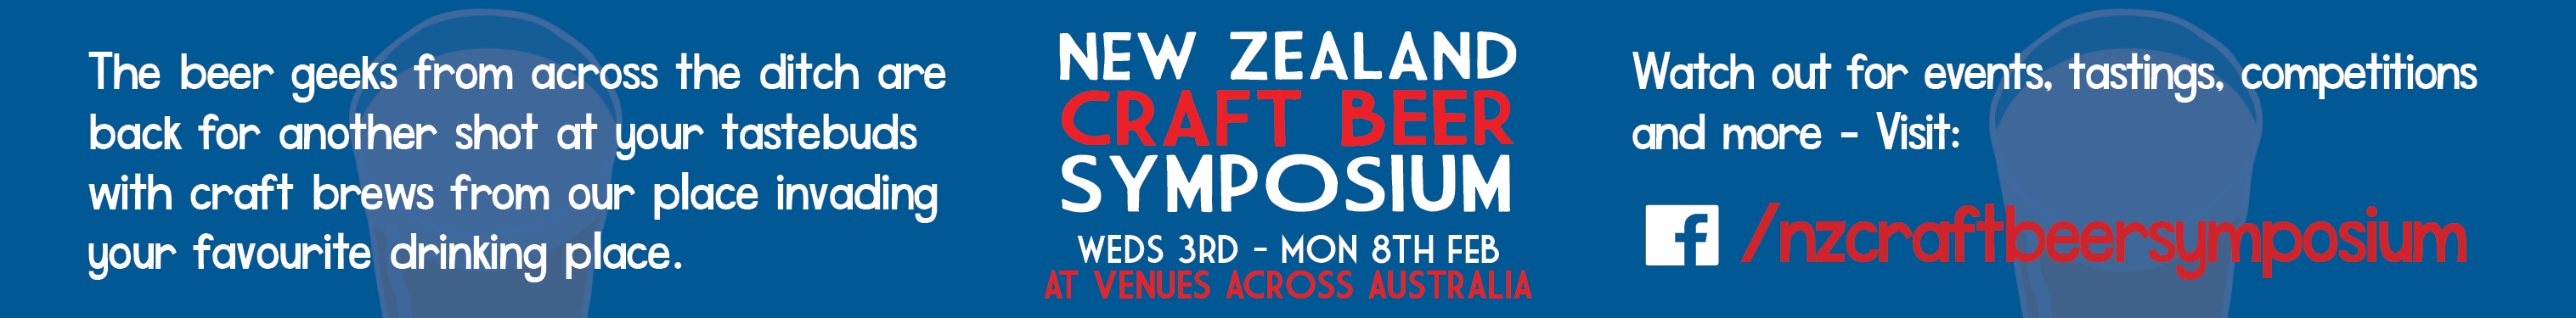 NZ Beer Symposium 2016